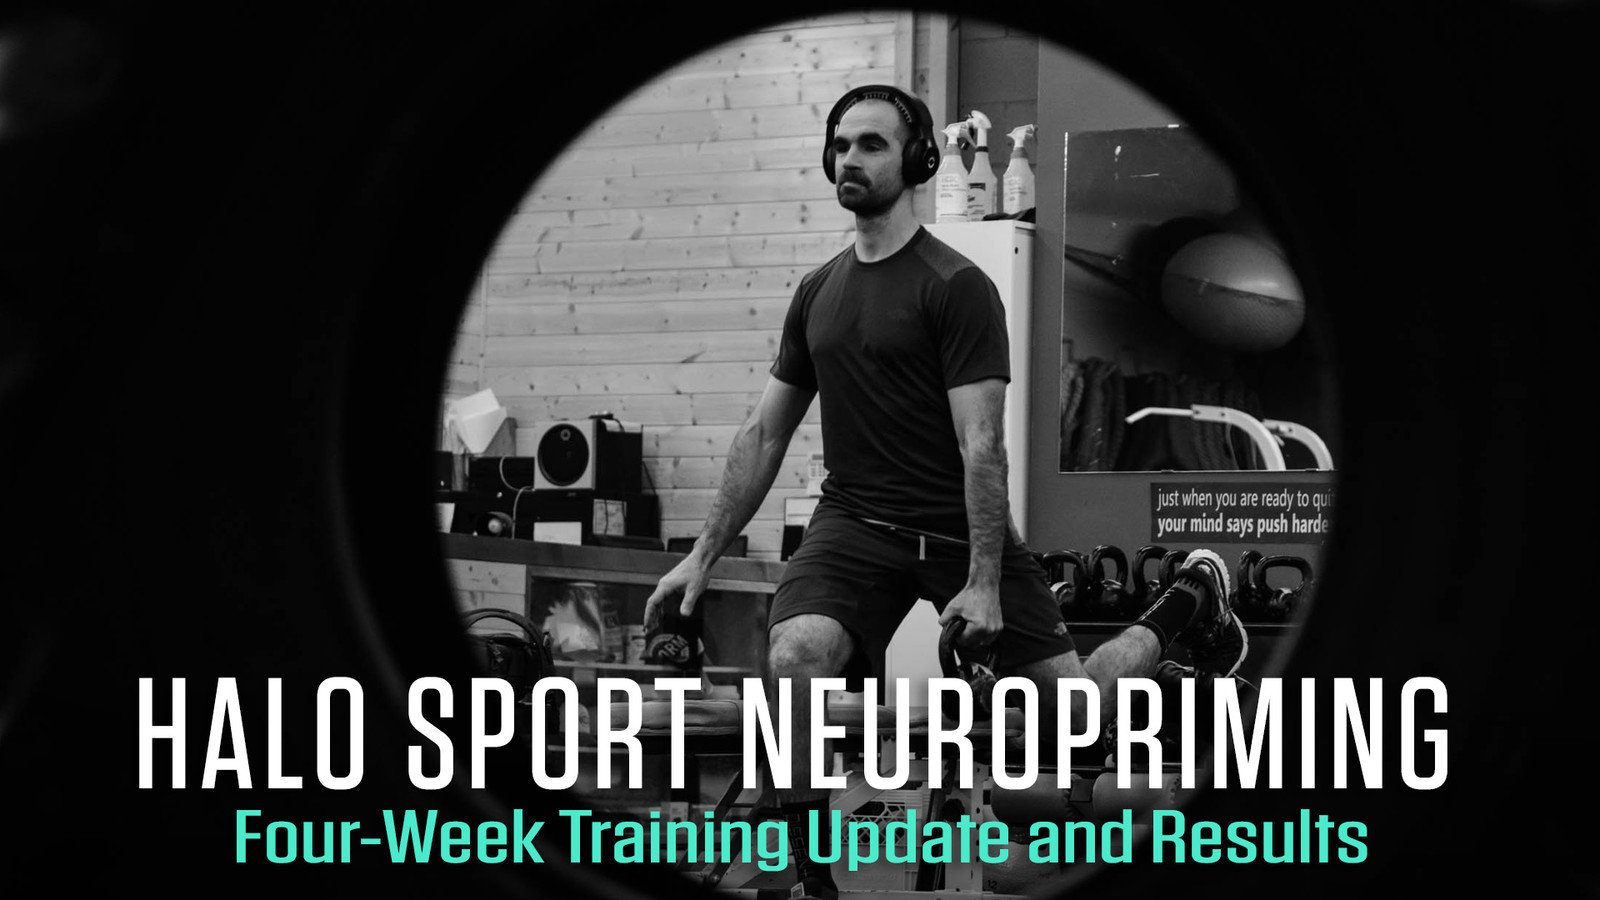 Halo Sport Neuropriming Four-Week Training Update and Results